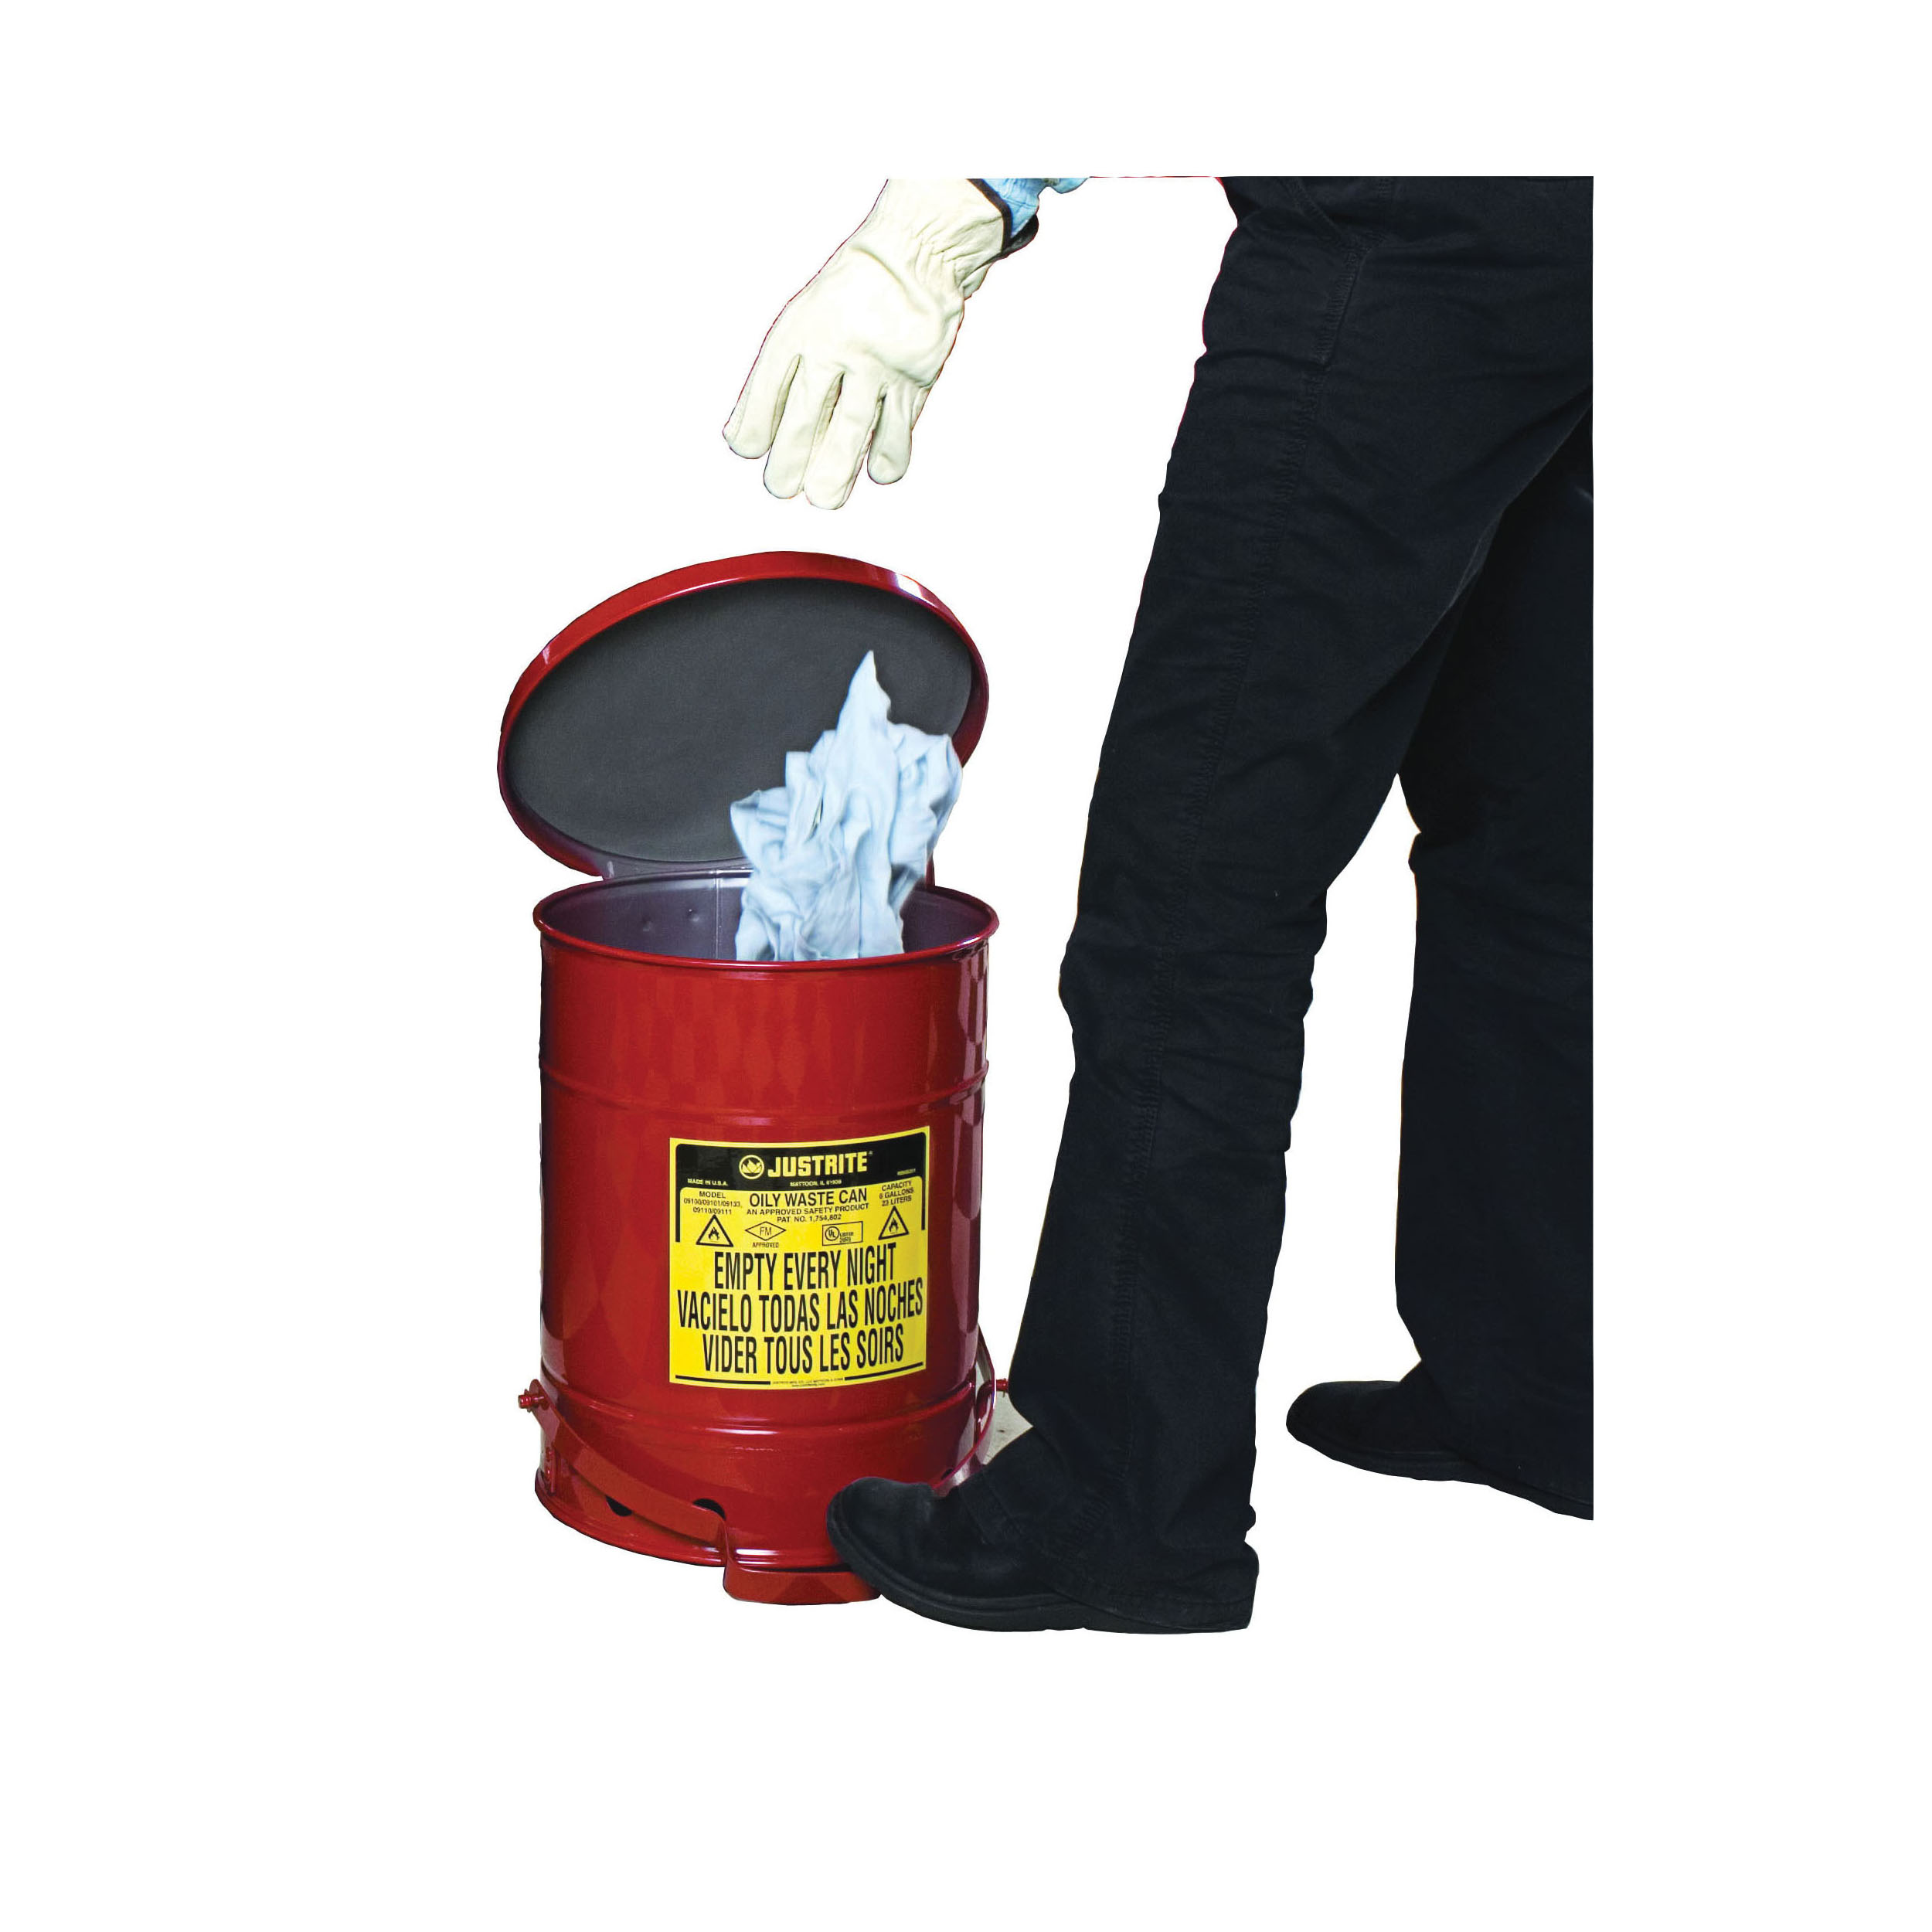 Justrite® 09308 Foot Operated Oily Waste Can With Self-Closing SoundGard™ Cover, 10 gal Capacity, 13.938 in Dia x 18-1/4 in H, Steel, Red